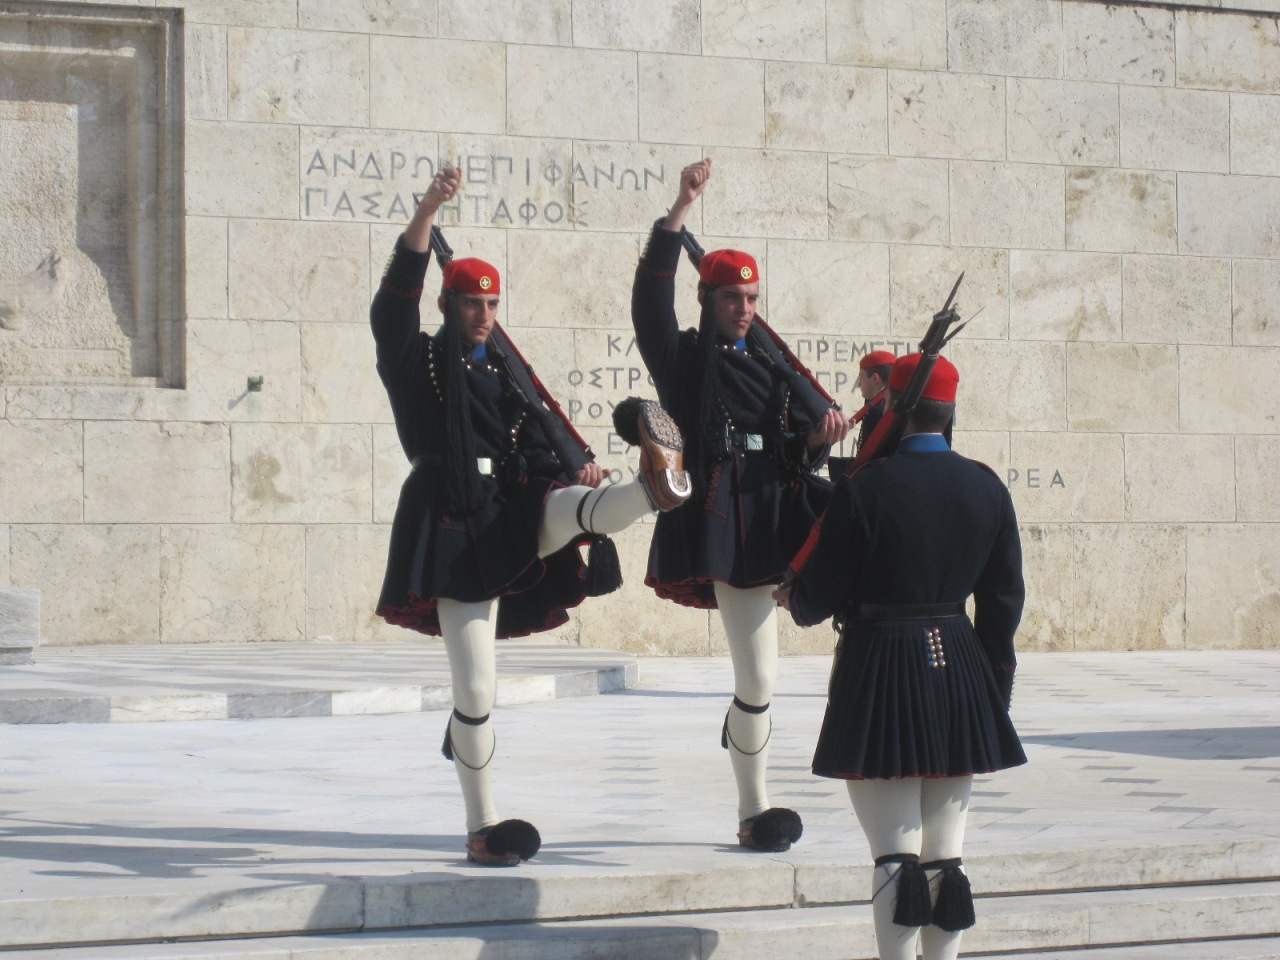 Ceremonial guard change at the Greek Parliament - Athens